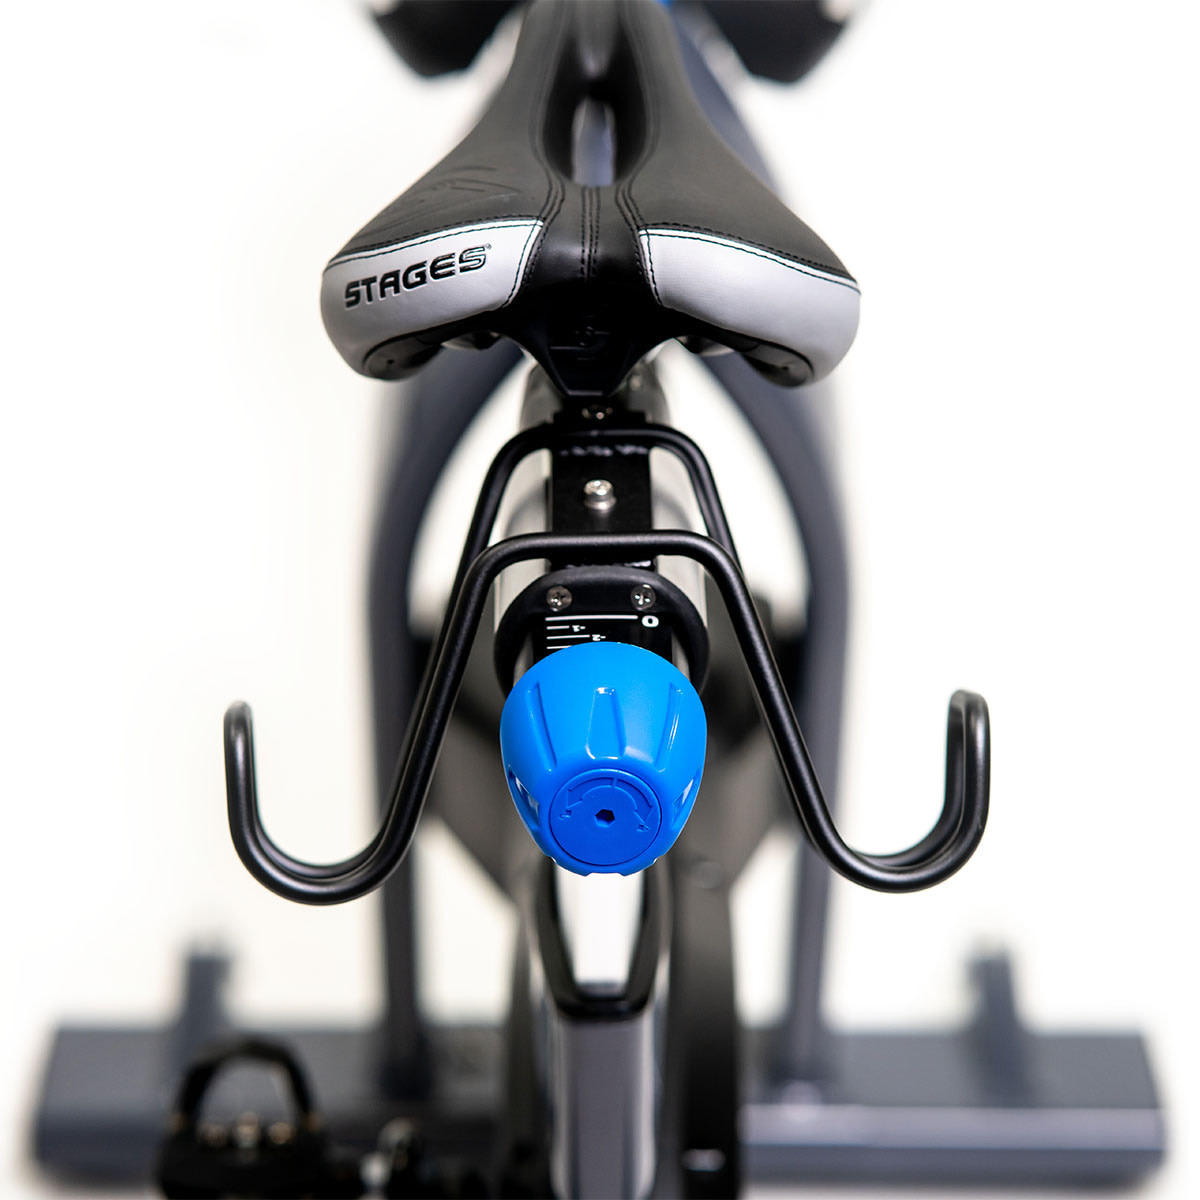 Stages SC3 Indoor Cycle For Aft Adjustment